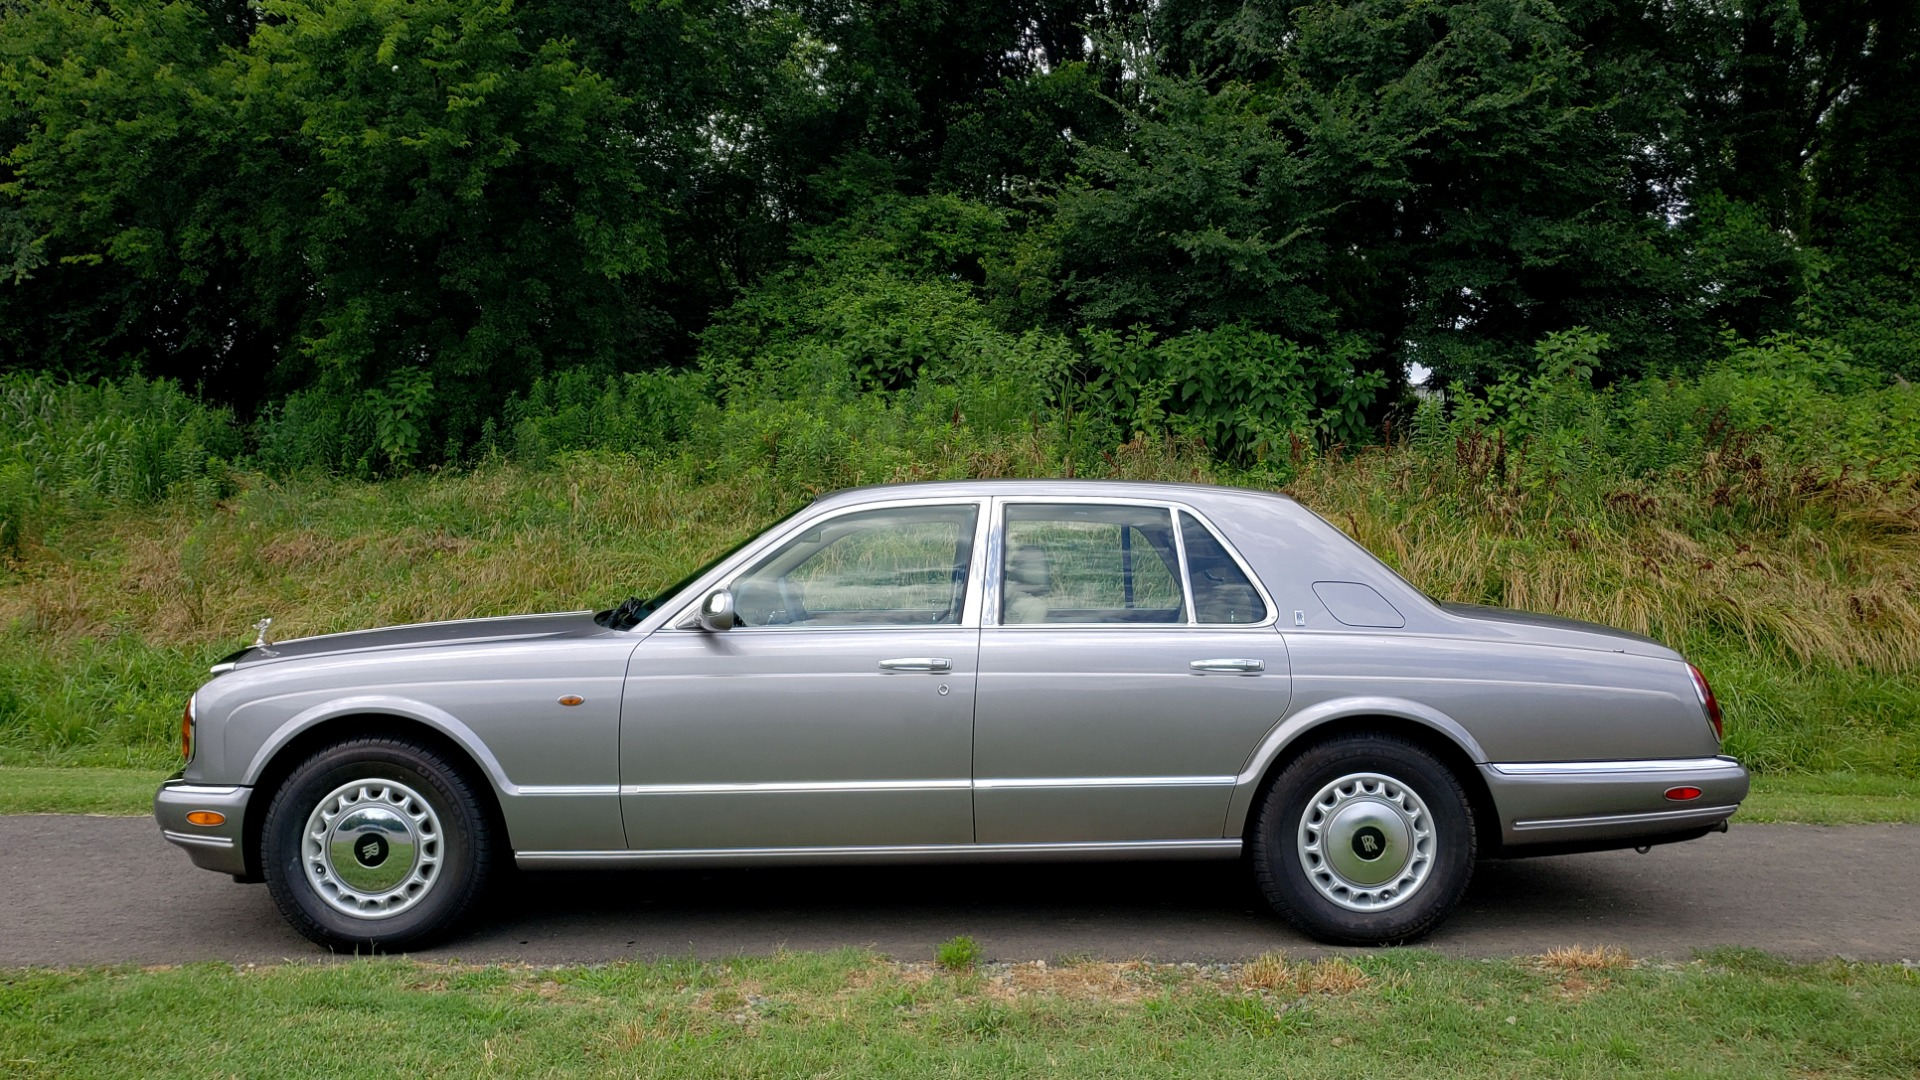 Used 1999 Rolls-Royce SILVER SERAPH 5.4L V12 / AUTO TRANS / LOW MILES / VERY CLEAN! for sale $34,999 at Formula Imports in Charlotte NC 28227 4